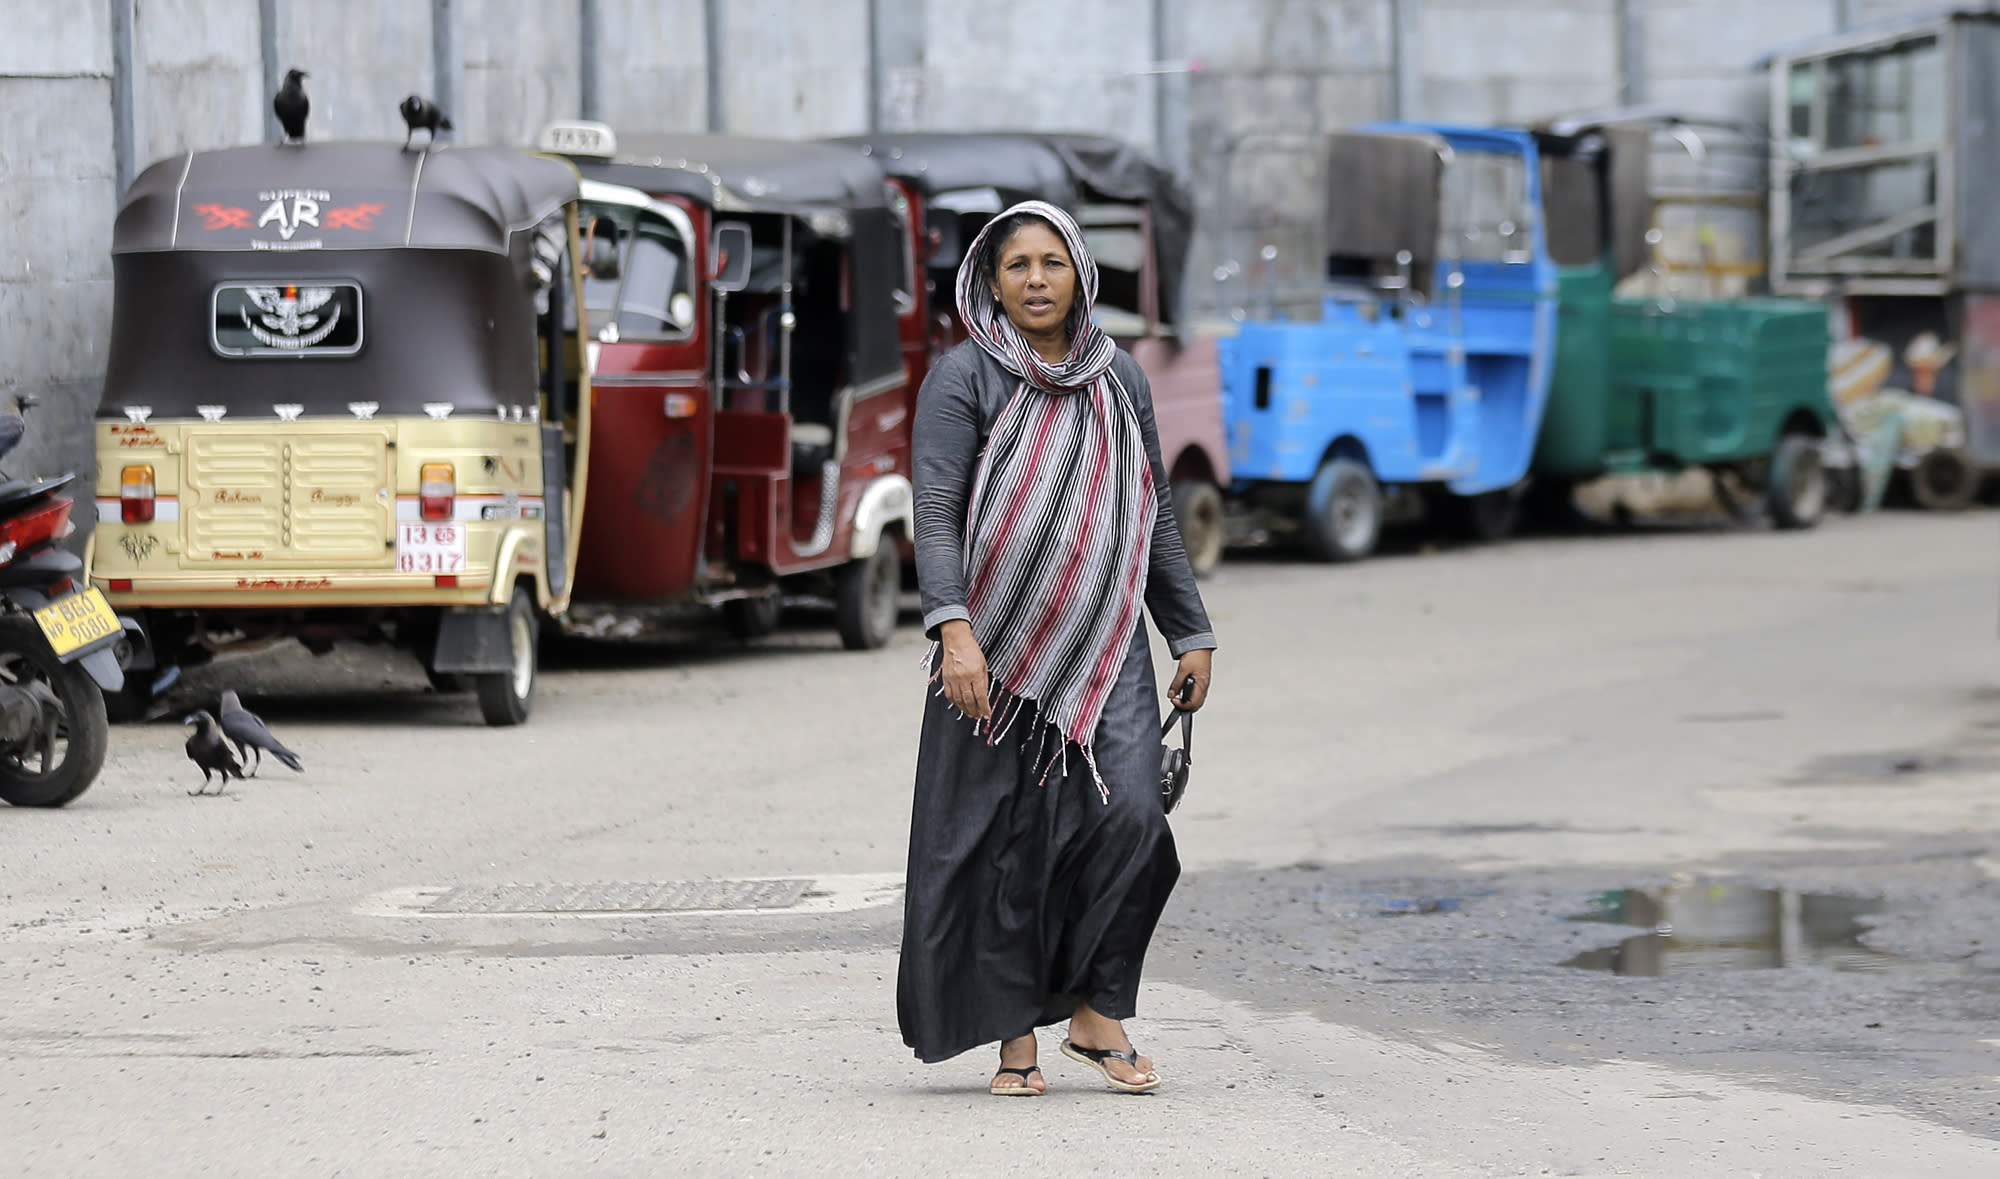 A Sri Lankan Muslim woman walks in a street in Colombo, Sri Lanka, Tuesday, Aug. 27, 2019. Islamic clerics in Sri Lanka asked Muslim women on Tuesday to continue to avoid wearing face veils until the government clarifies whether they are once again allowed now that emergency rule has ended four months after a string of suicide bomb attacks. (AP Photo/Eranga Jayawardena)